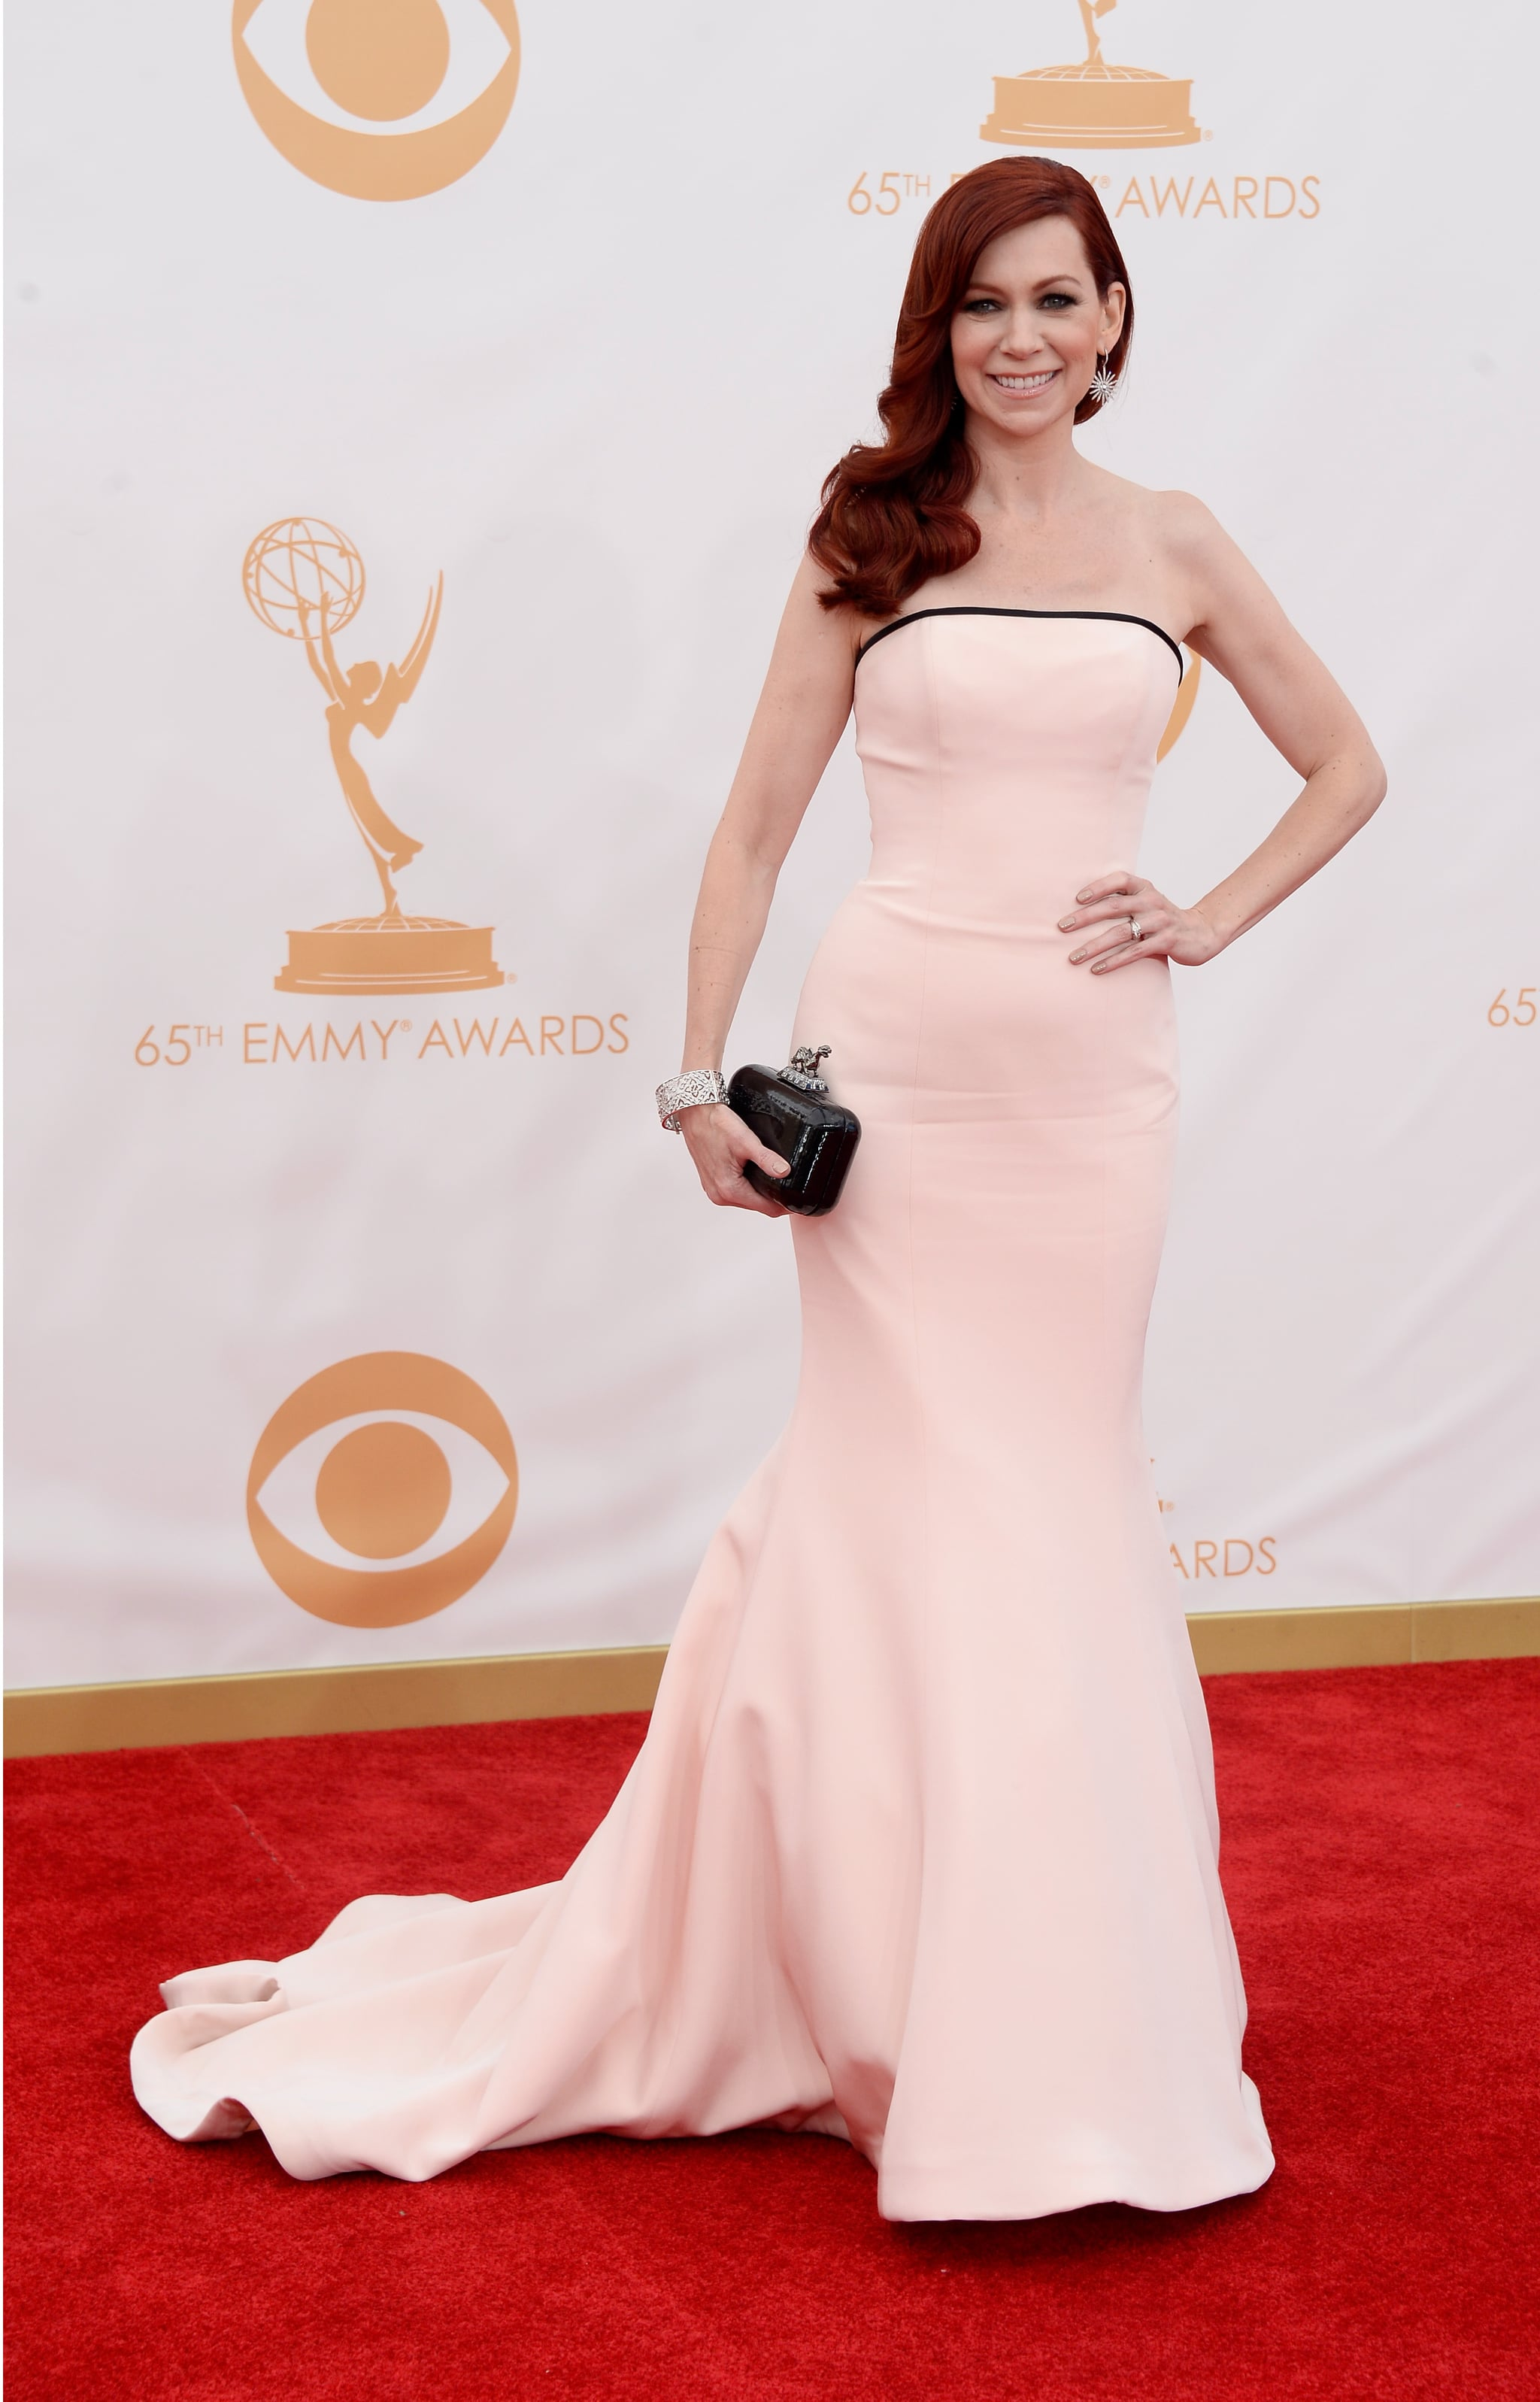 Actress Carrie Preston struck a pose on the Emmys red carpet.